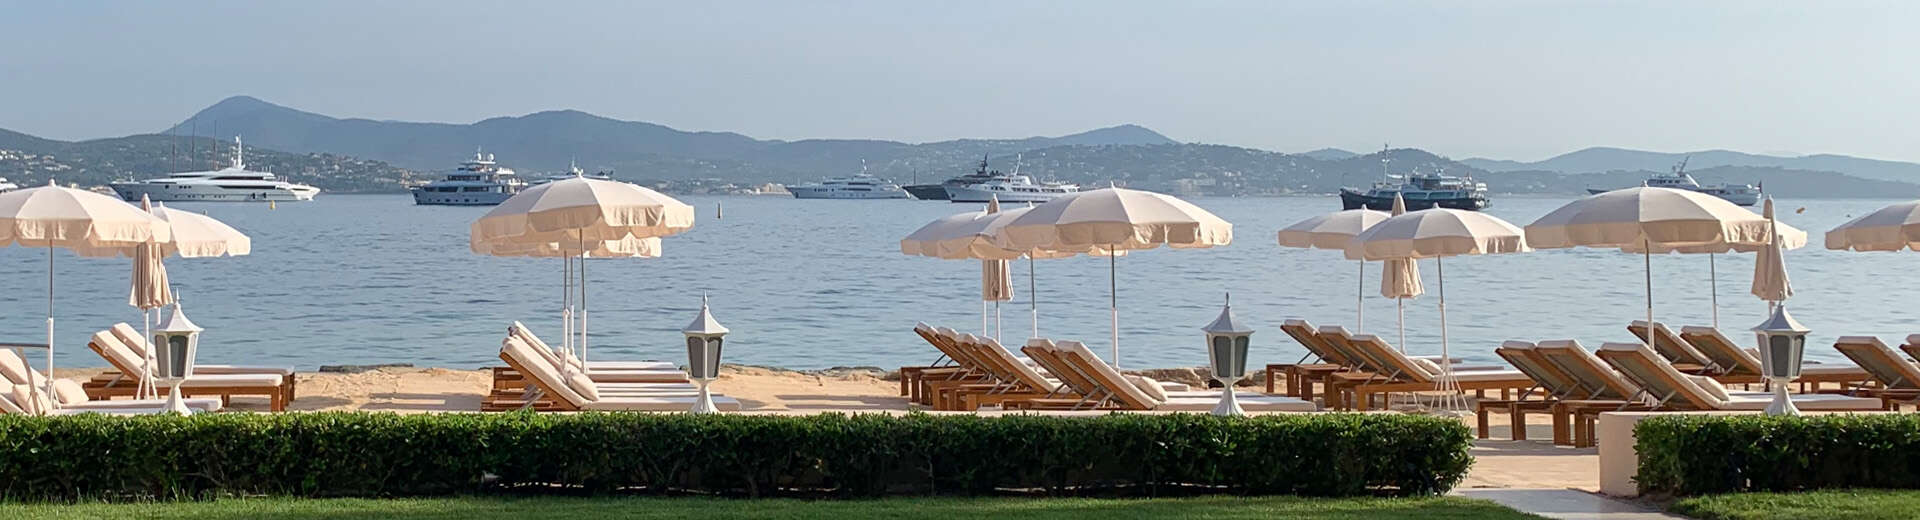 The beach at Cheval Blanc in St. Tropez.